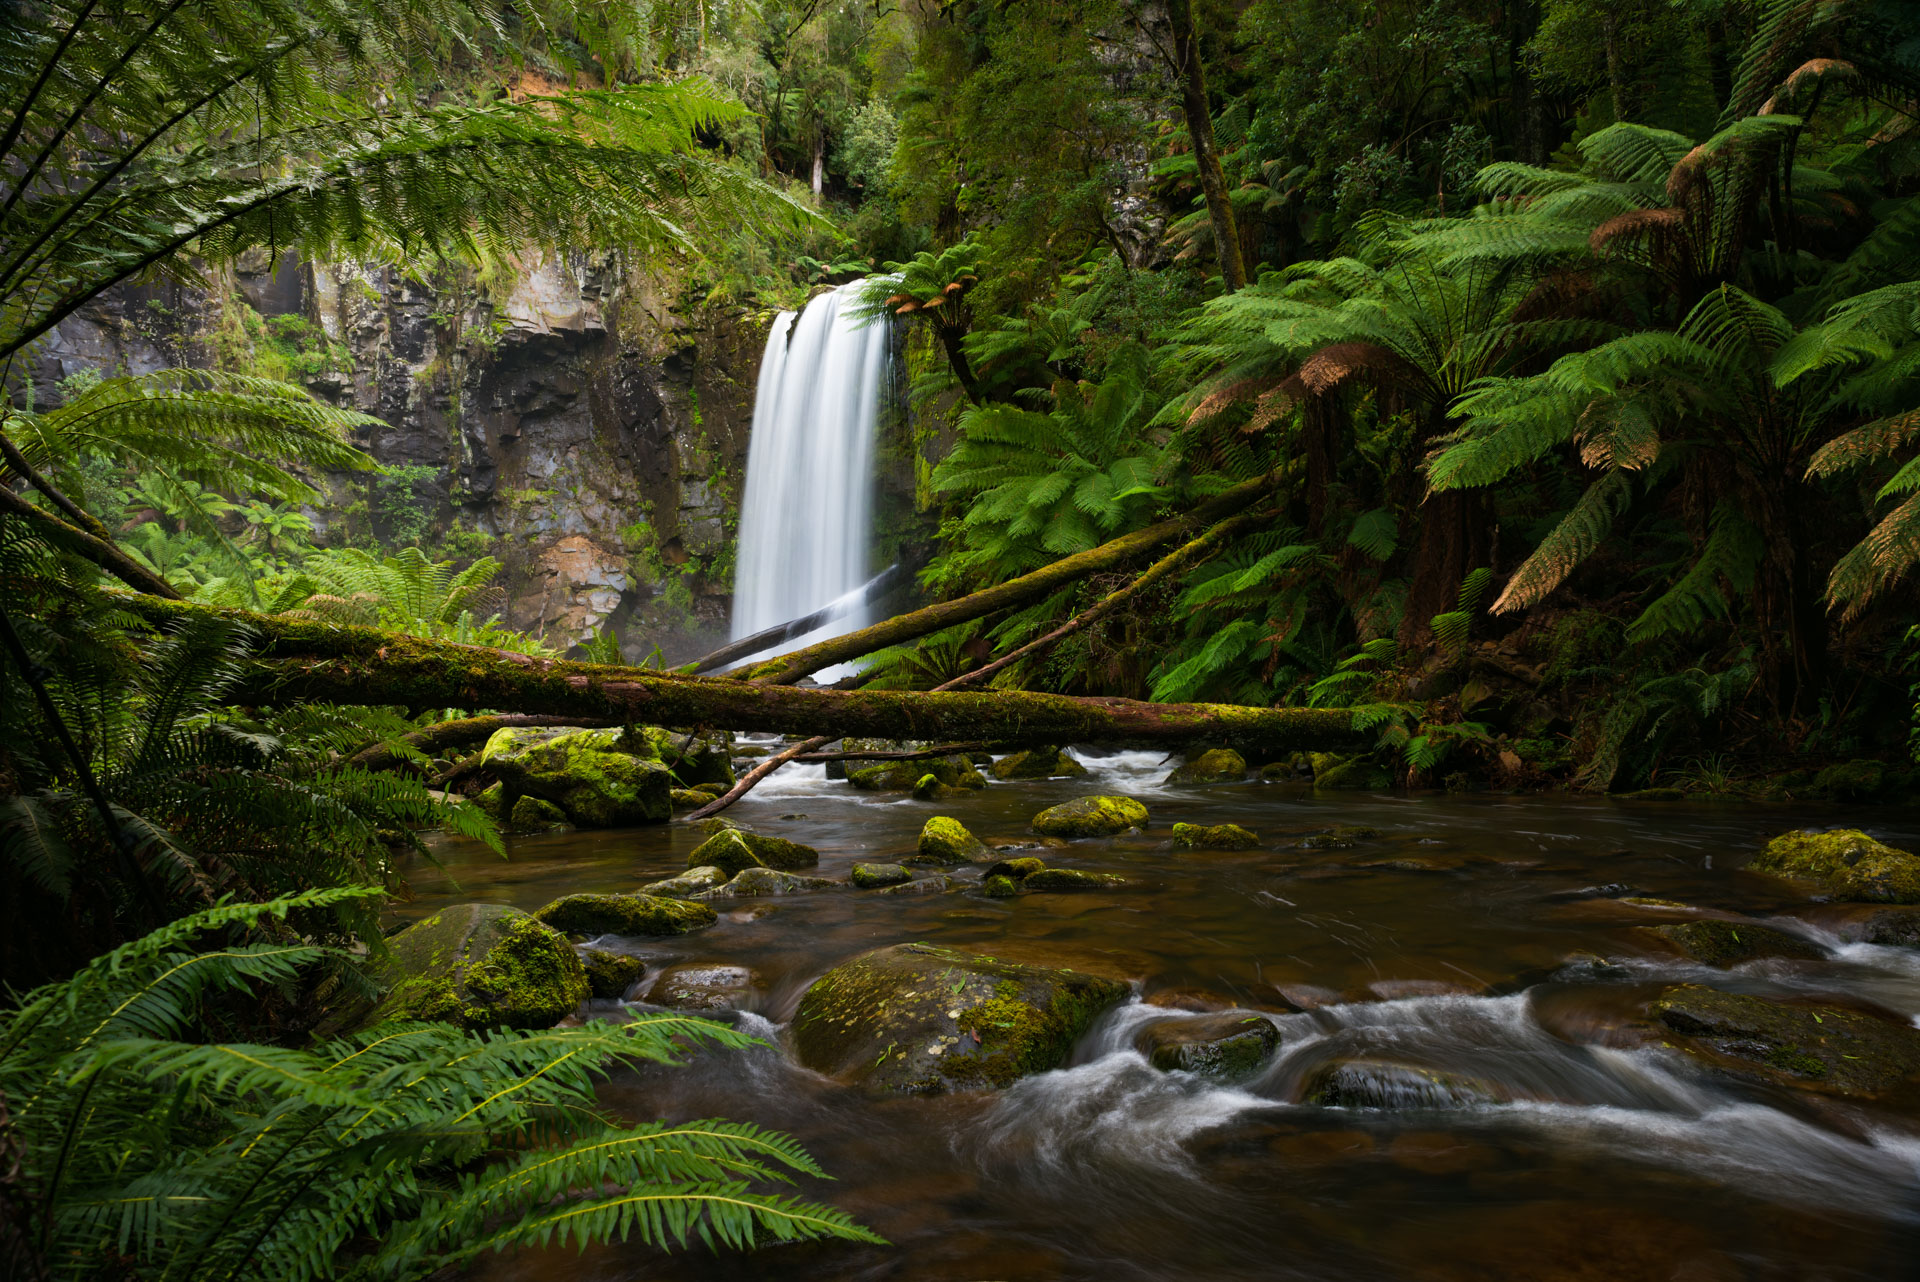 Landscape, Waterfall, Hopetoun Falls, Great Ocean Road, Rainforest, Visit Victoria, Tourism Australia, Brad Geddes Photography, Brad Geddes, Melbourne Photographer, Melbourne Landscape Photographer, Long Exposure